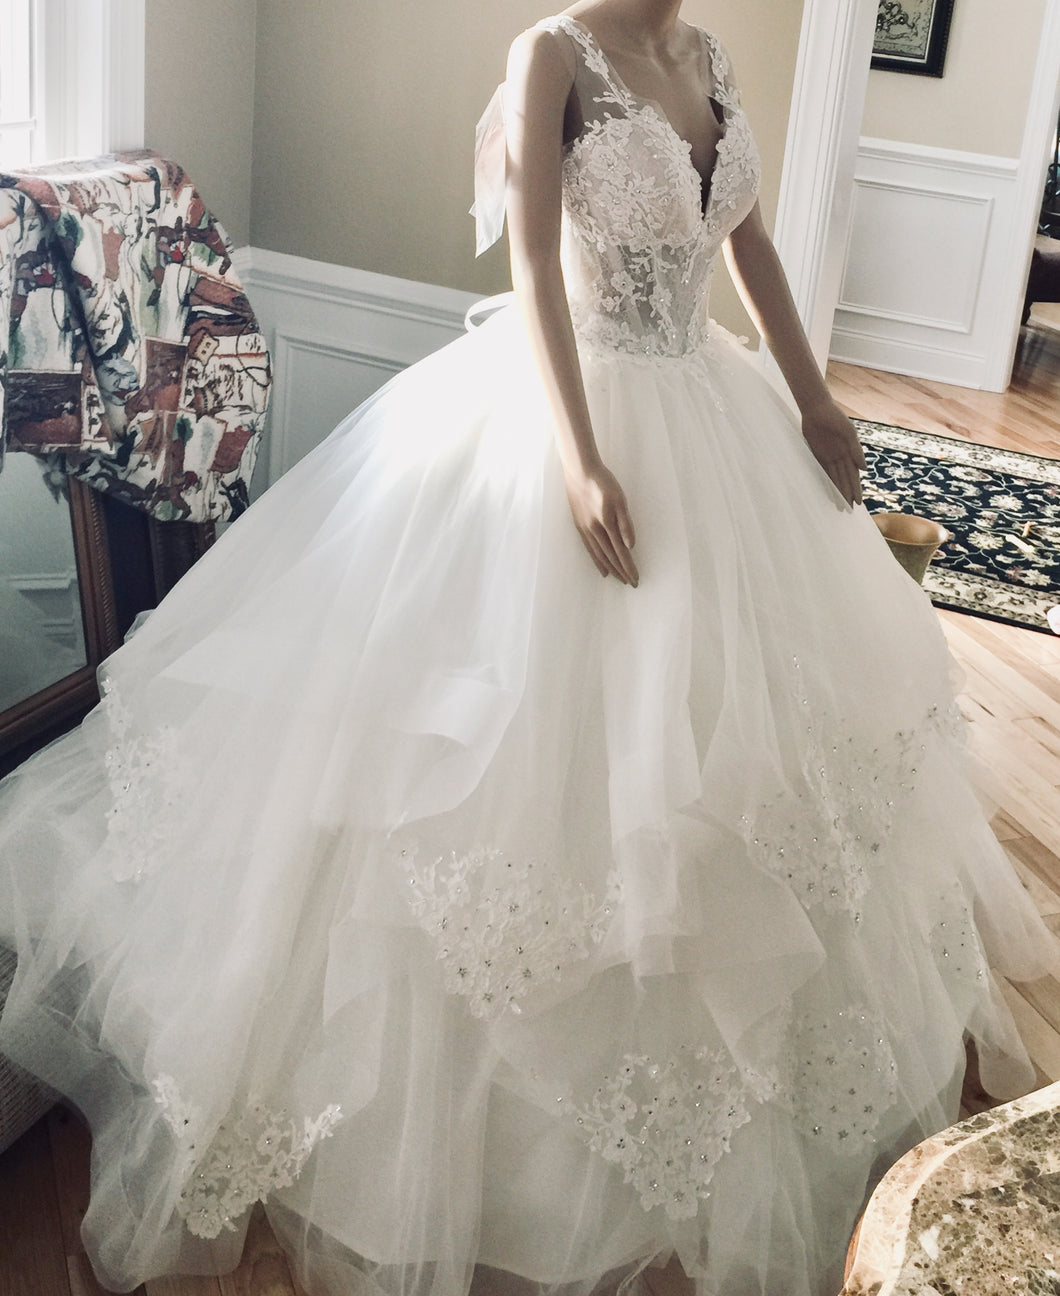 Pnina Tornai 'Love' size 12 new wedding dress side view on bride